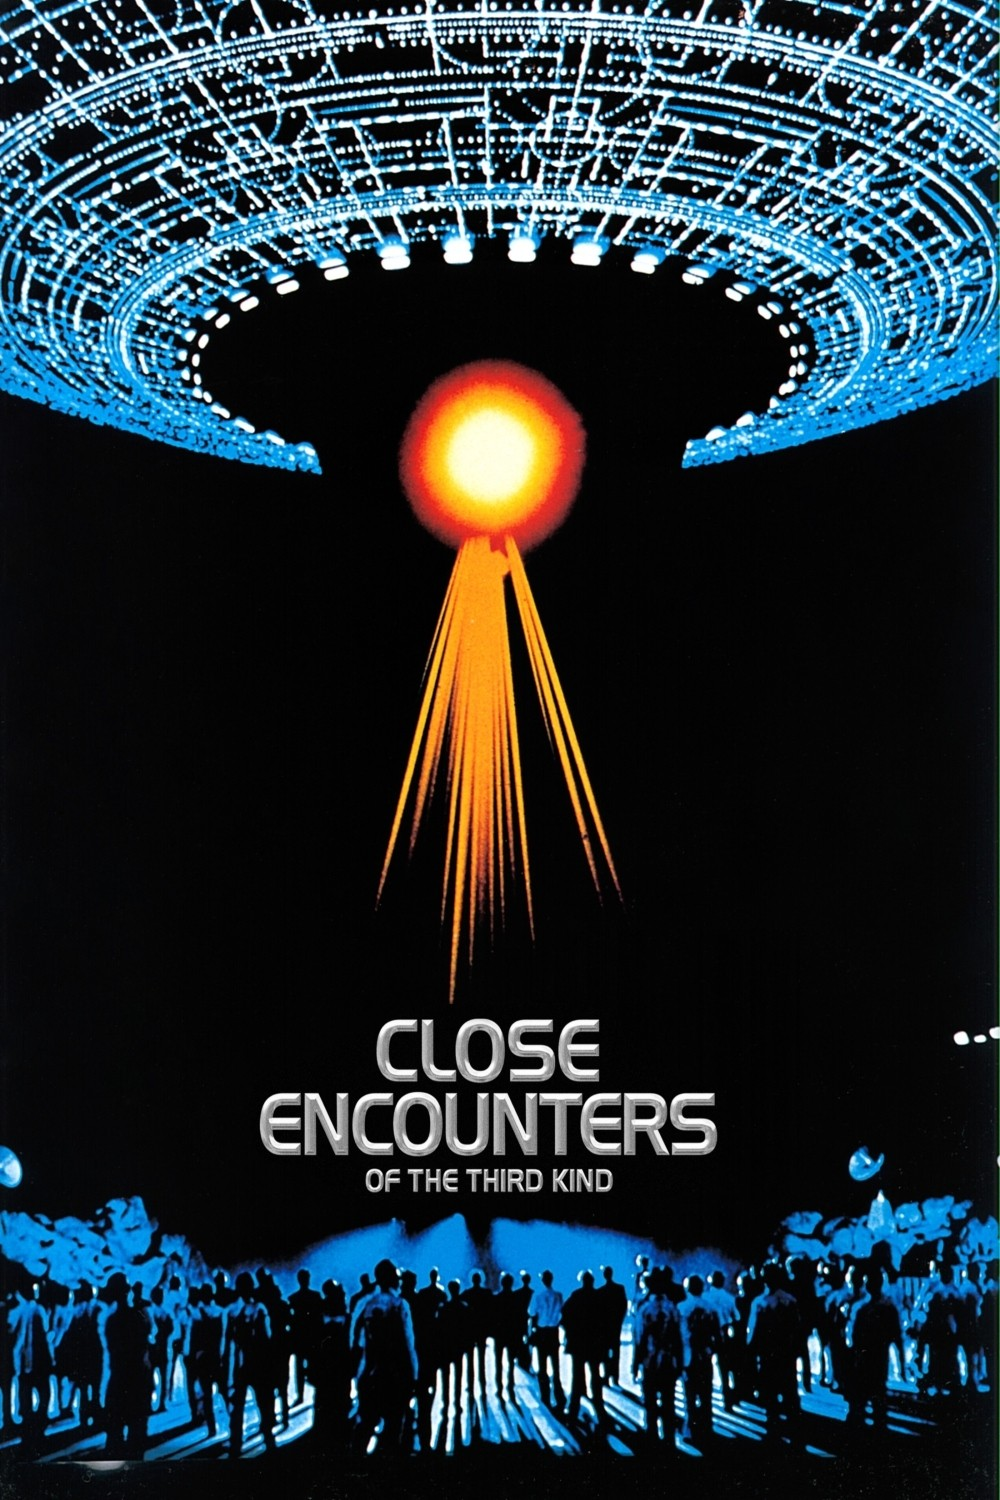 close_encounters_of_the_third_kind_1977.jpg